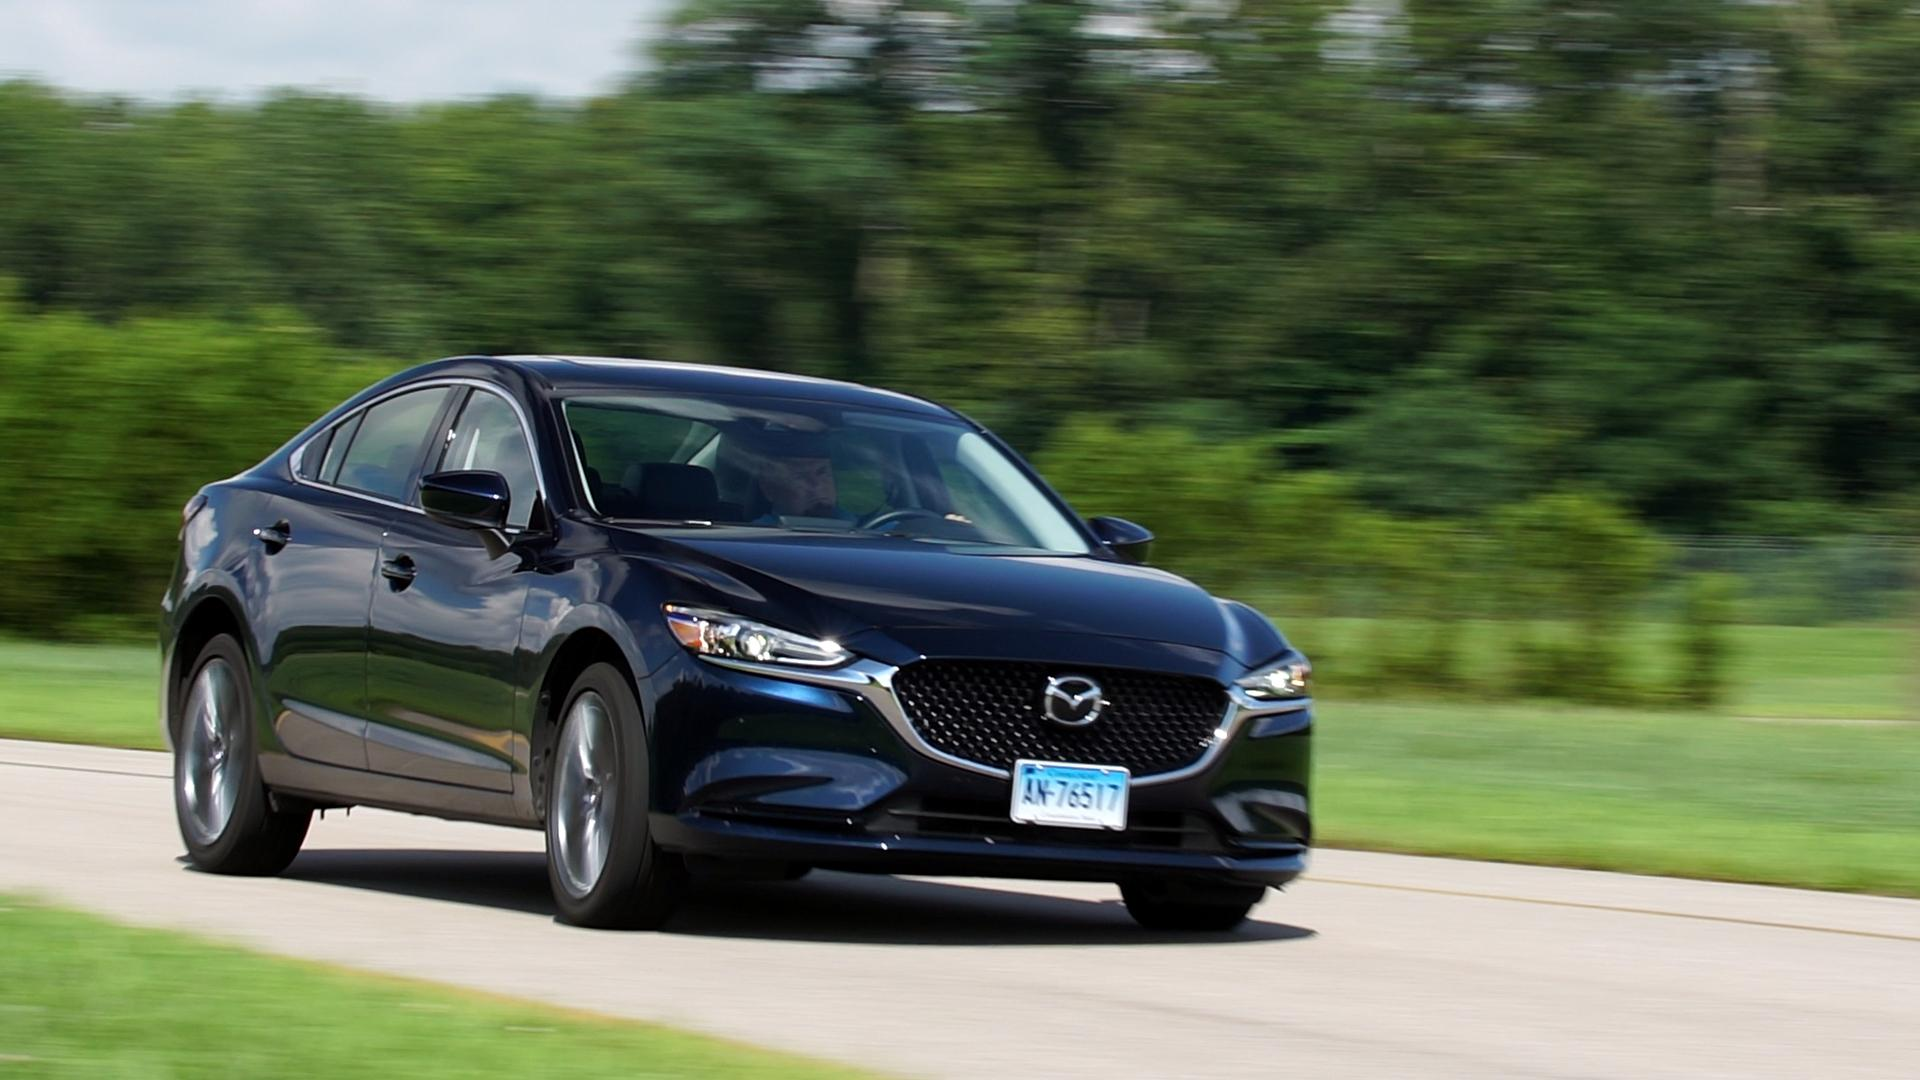 2018 Mazda6 Review: Luxury At A Bargain Price